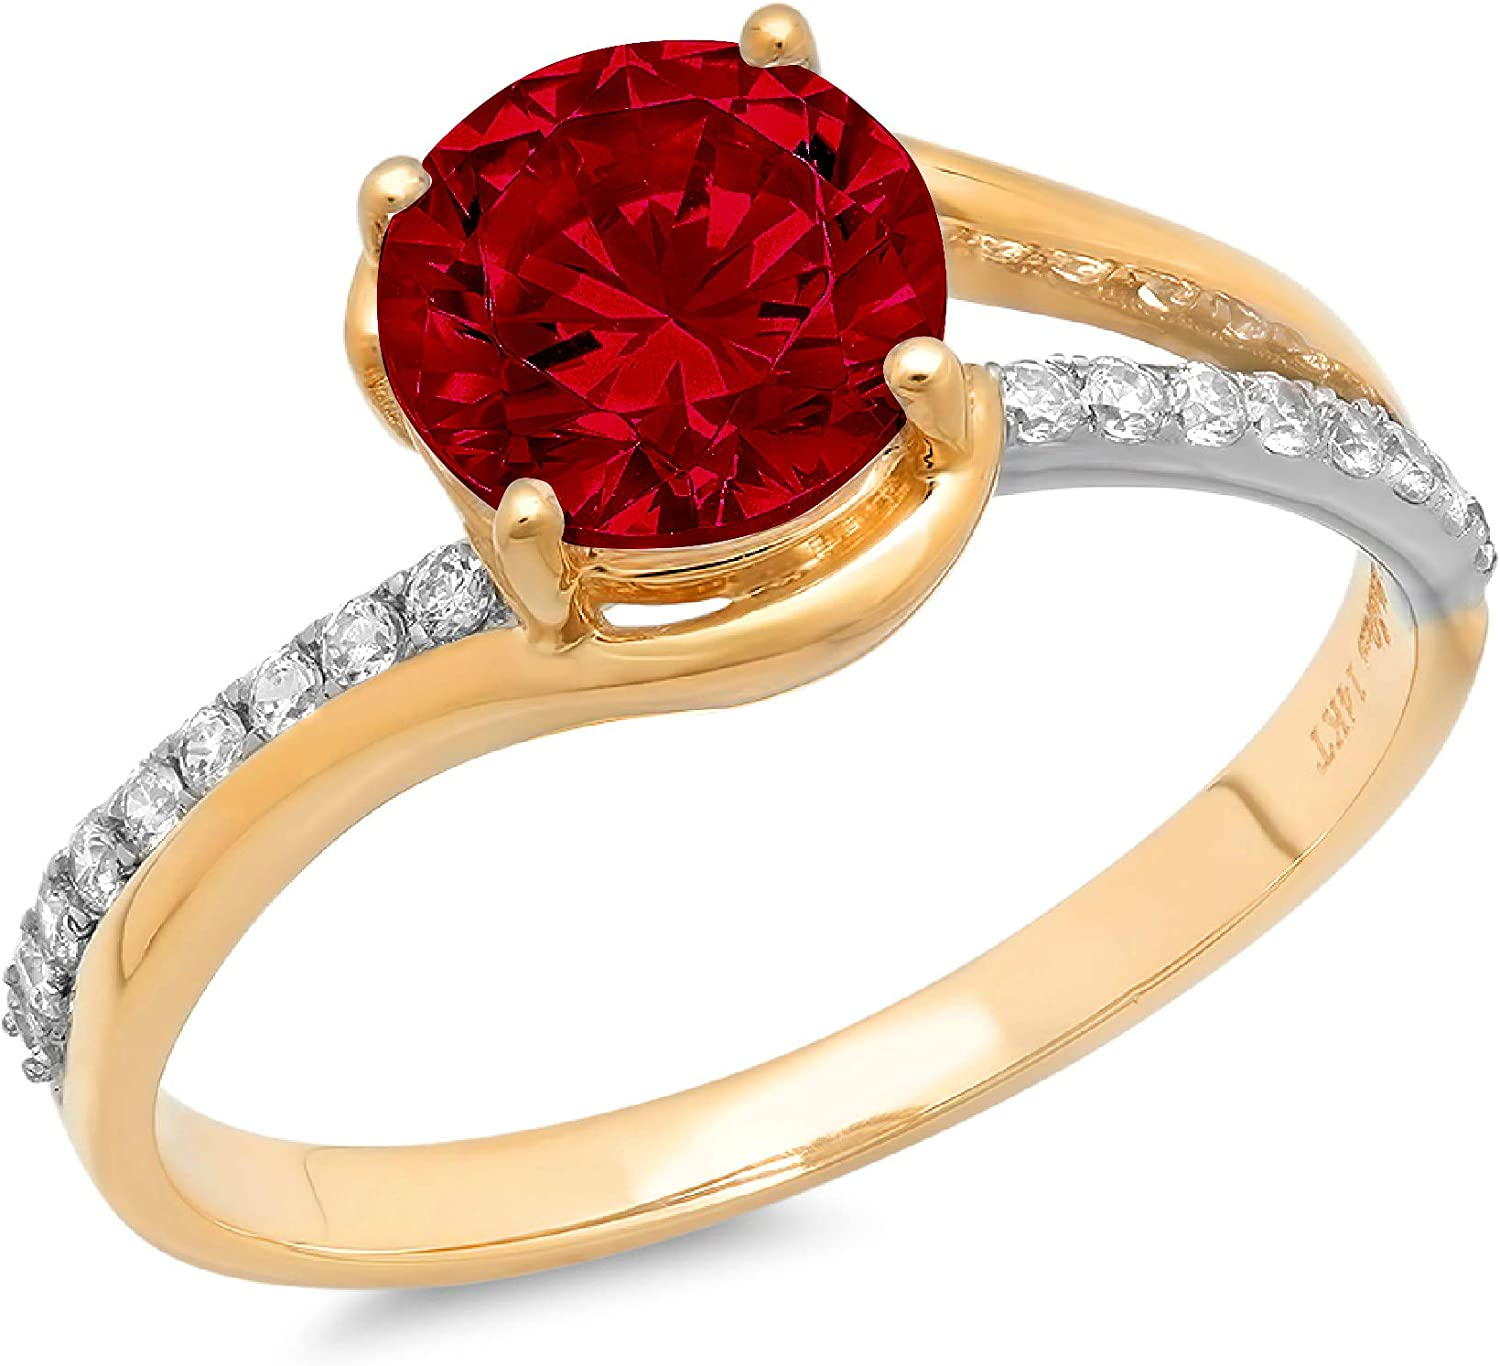 1.9ct Brilliant Round Cut Solitaire Al sold Seasonal Wrap Introduction out. G Garnet Scarlet Natural Red